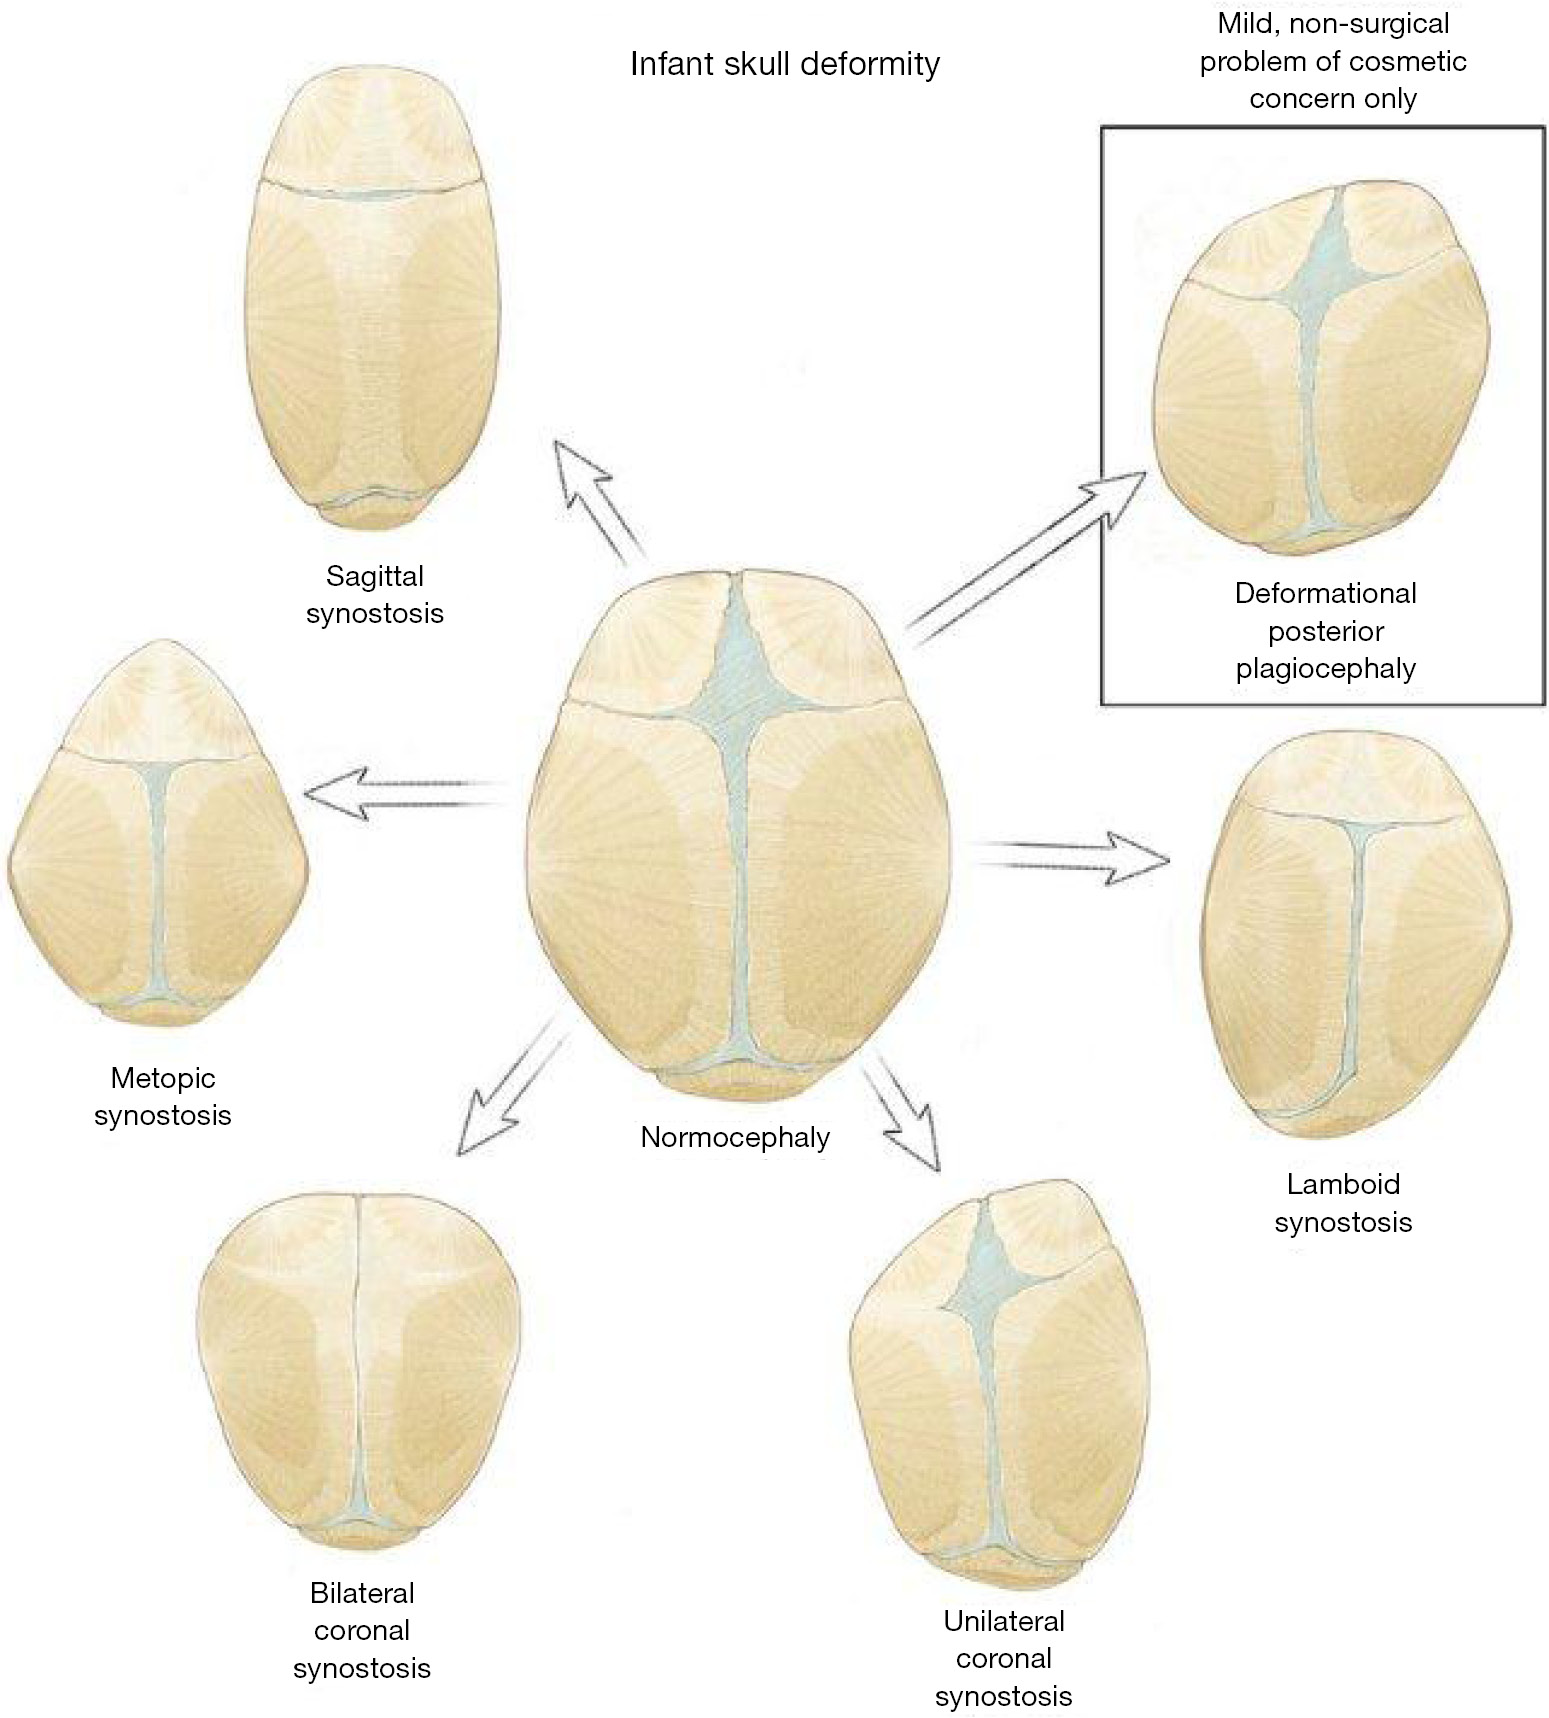 Endoscopic craniosynostosis repair - Proctor - Translational Pediatrics